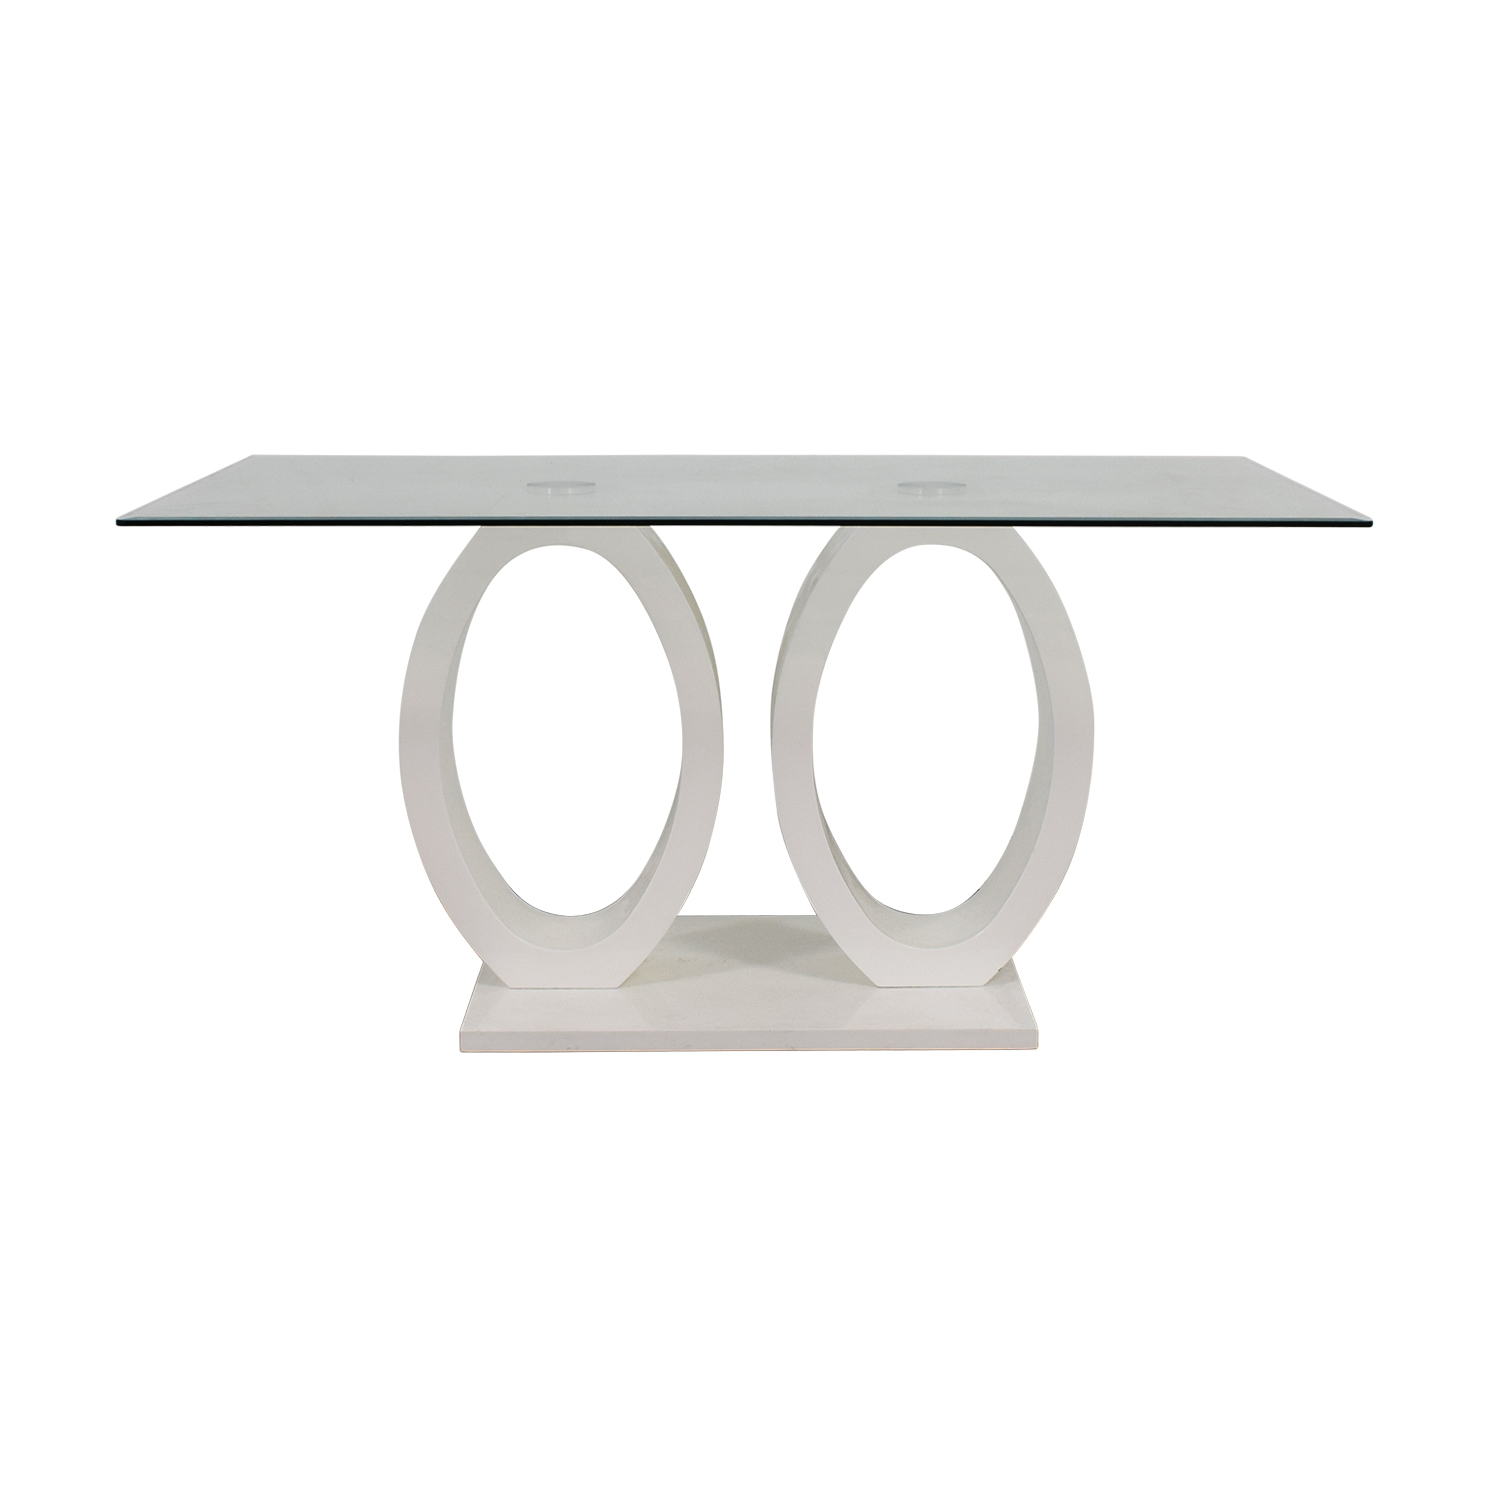 White Oval Rings and Rectangular Glass Contemporary Table nyc